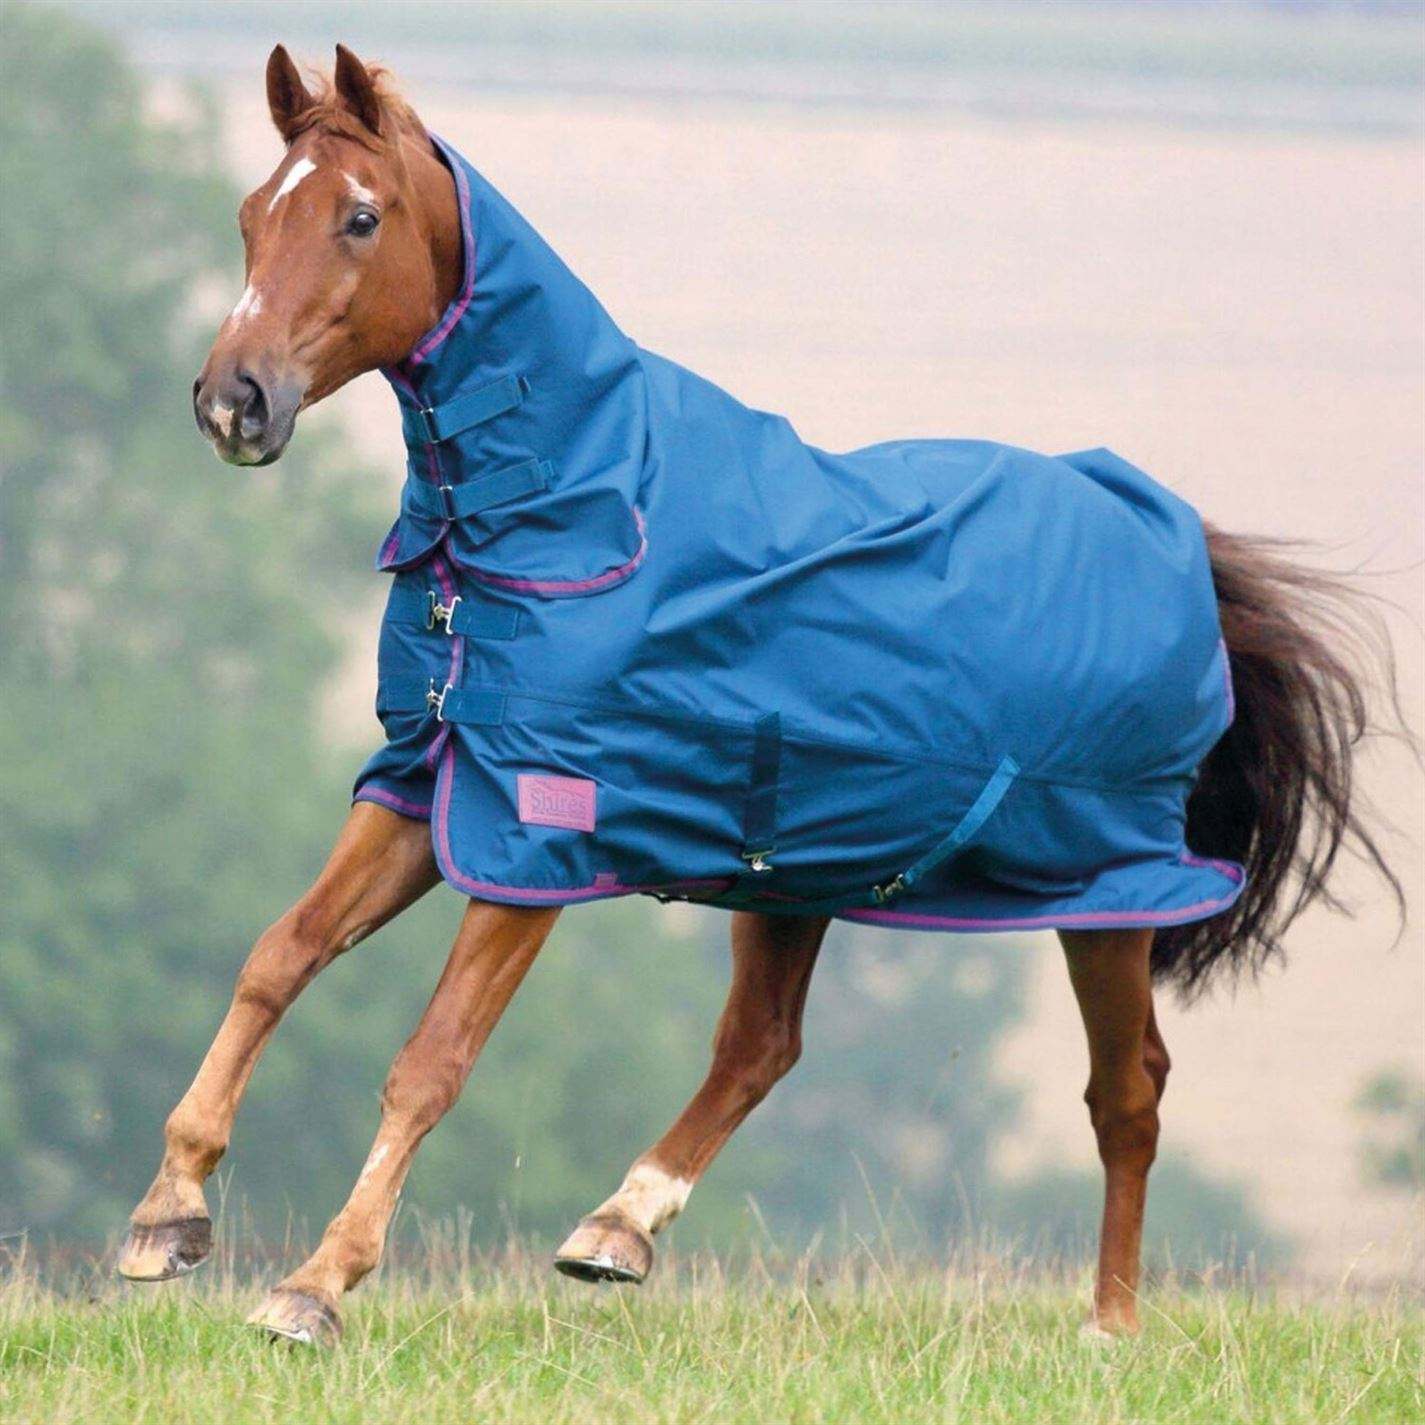 Shires Tempest Combo Original 50gm Combo Tempest Turnout Horse Rug Waterproof df7b0d